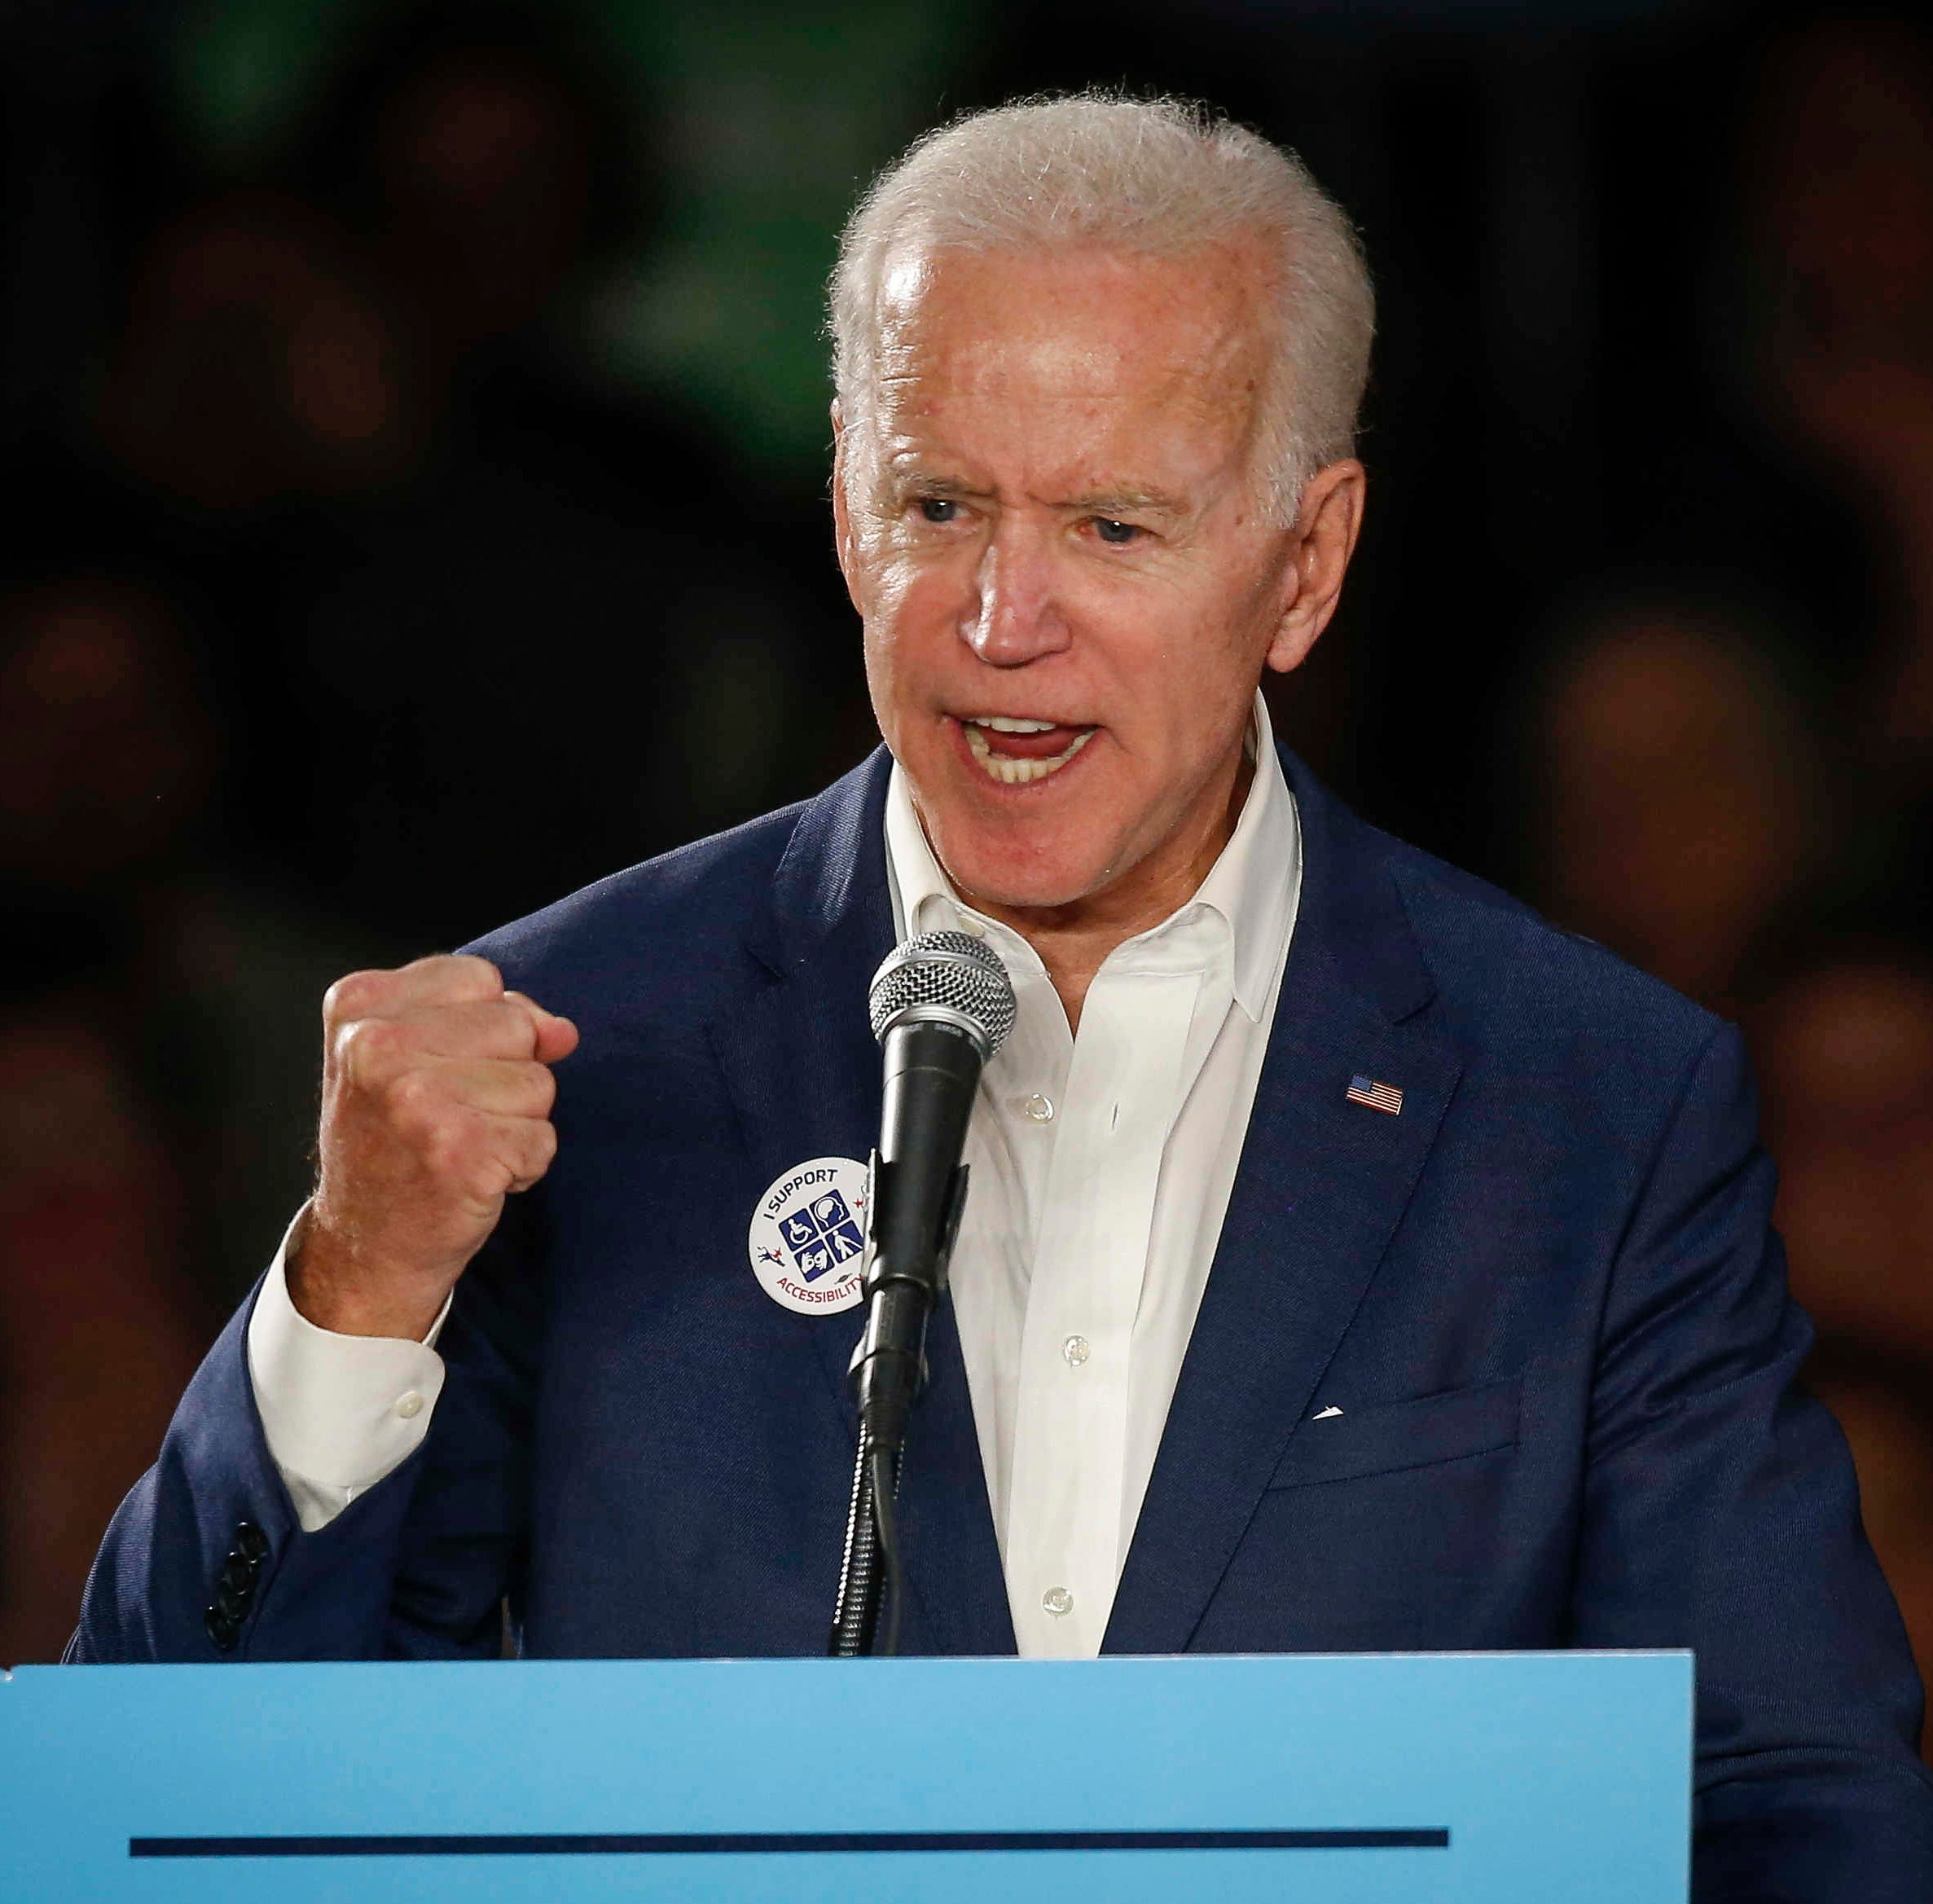 Joe Biden to make first Iowa trip as 2020 contender next week